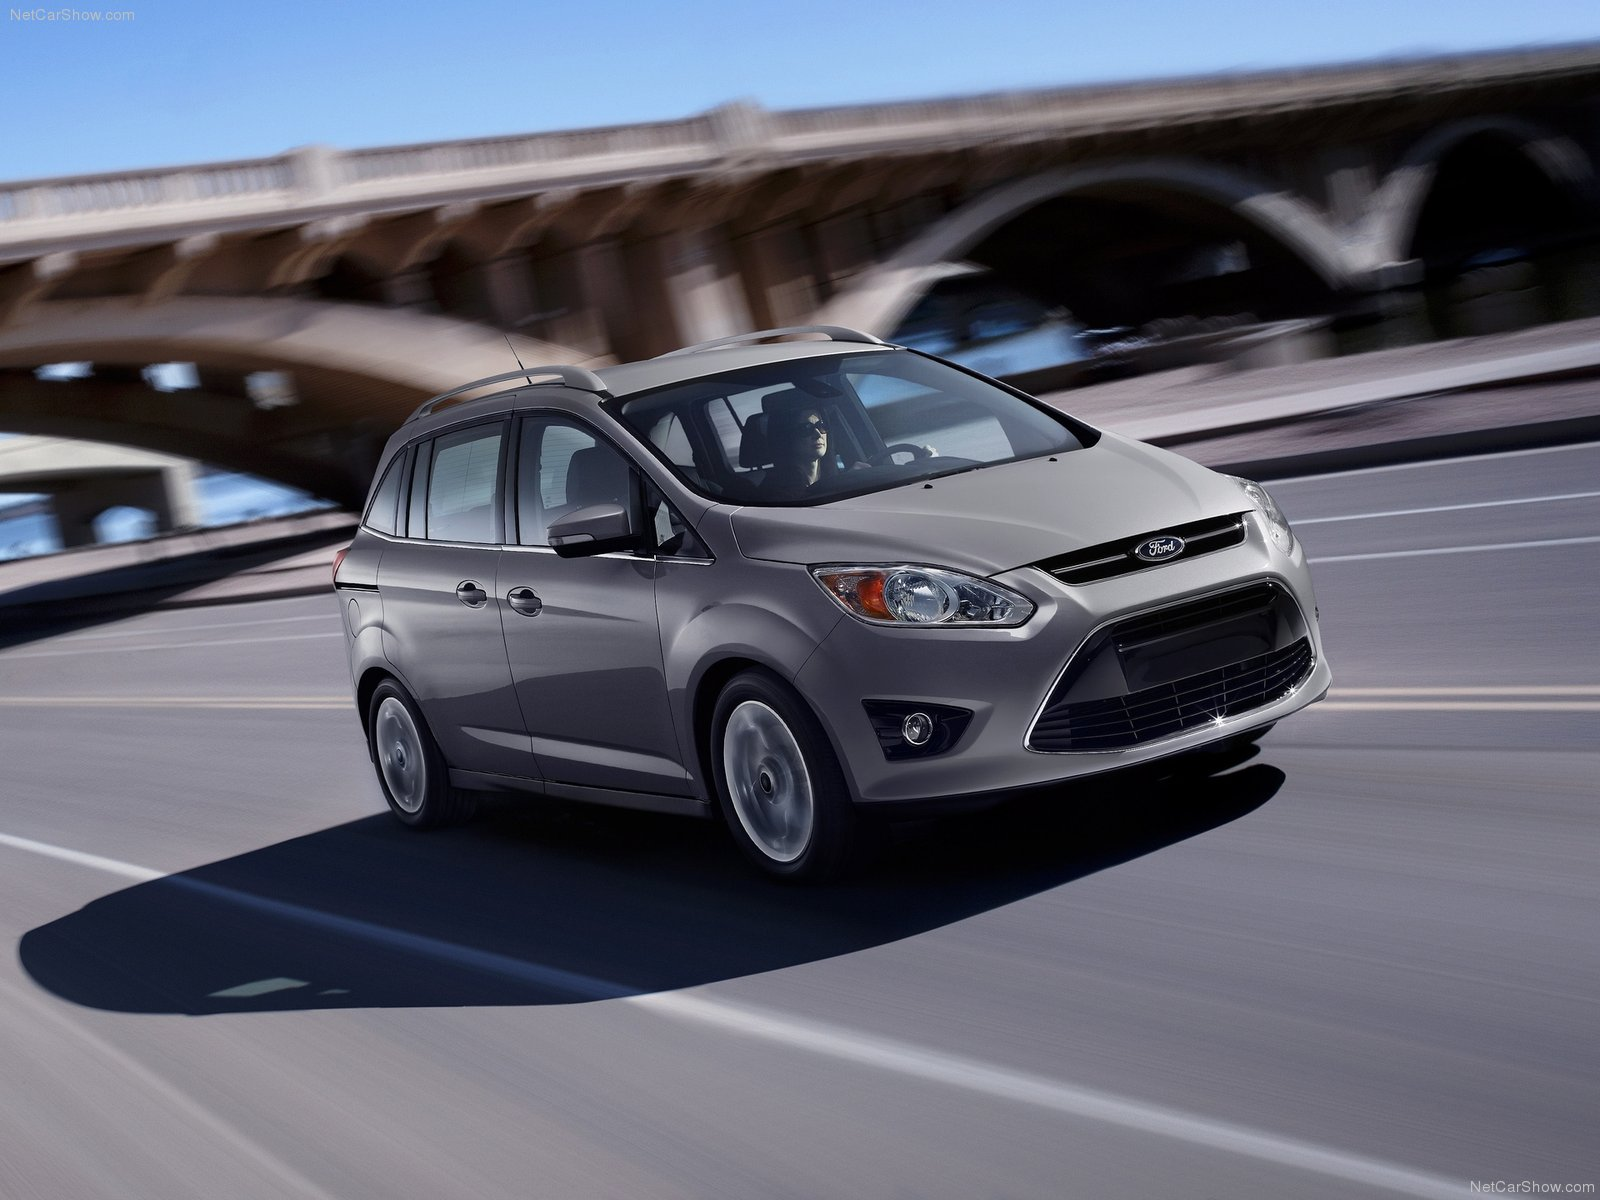 Ford Focus C Max Picture 77501 Ford Photo Gallery HD Wallpapers Download free images and photos [musssic.tk]